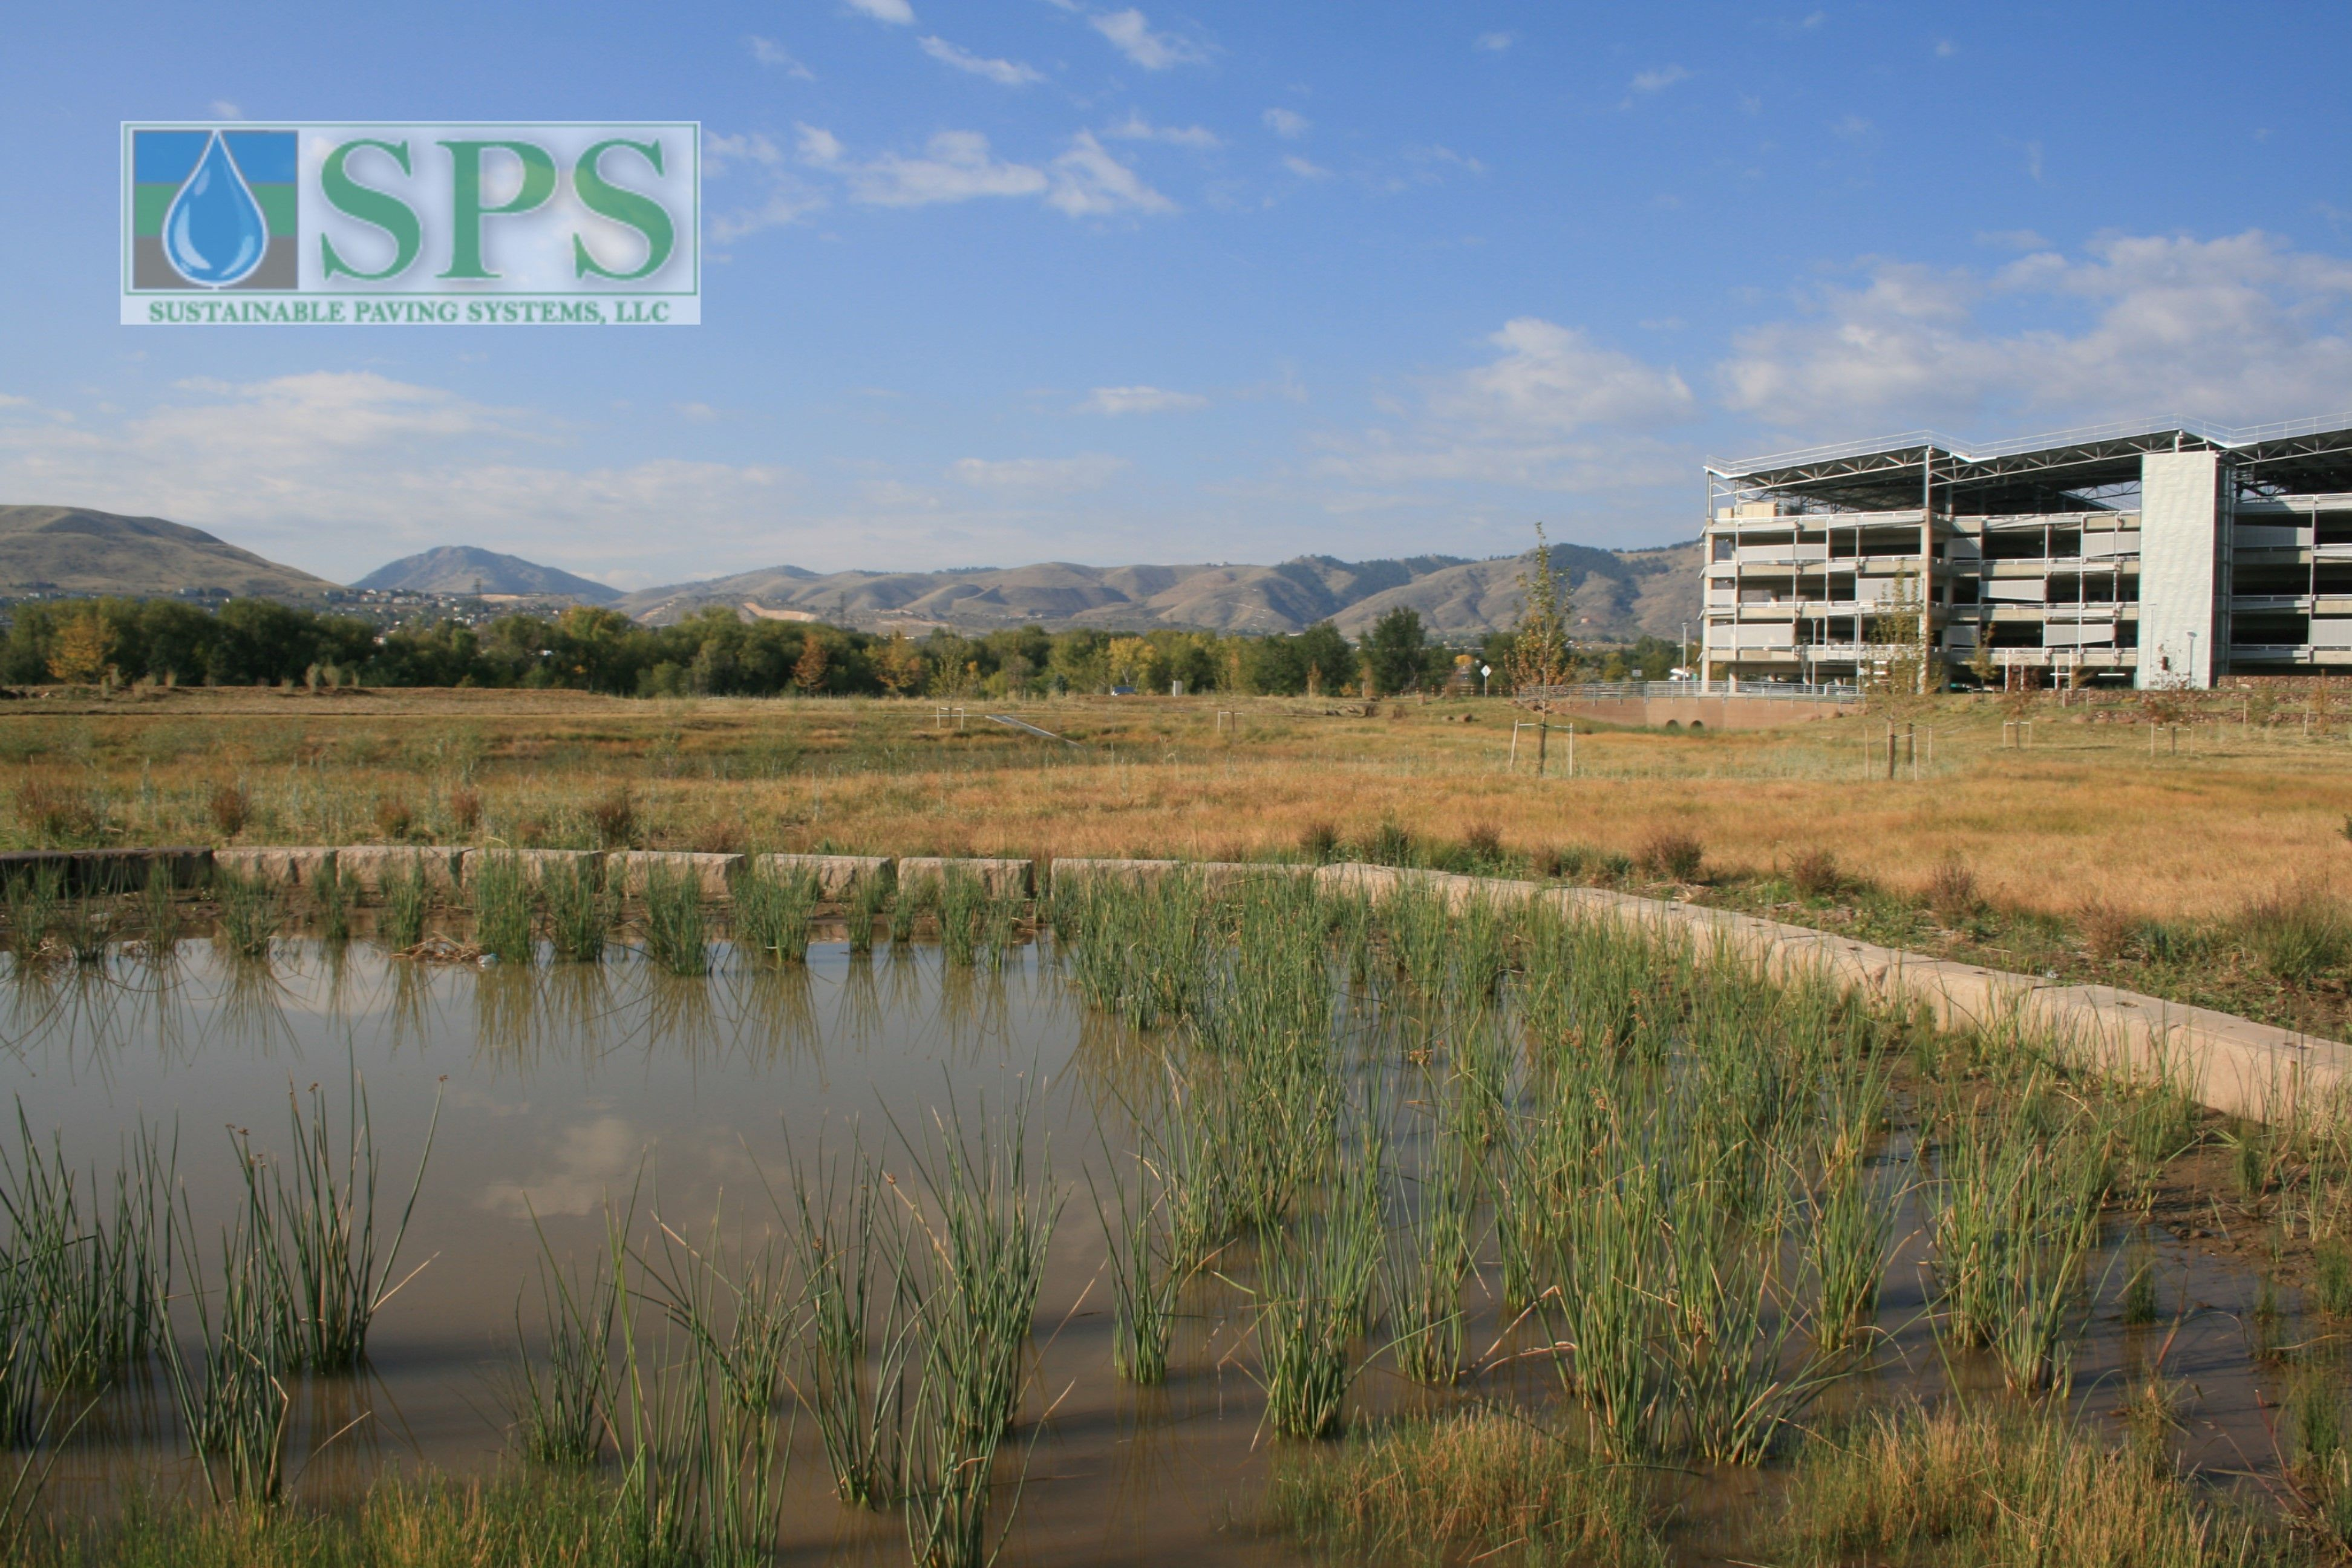 Grasscrete Partially Concealed System At Nrel Detention Pond_04